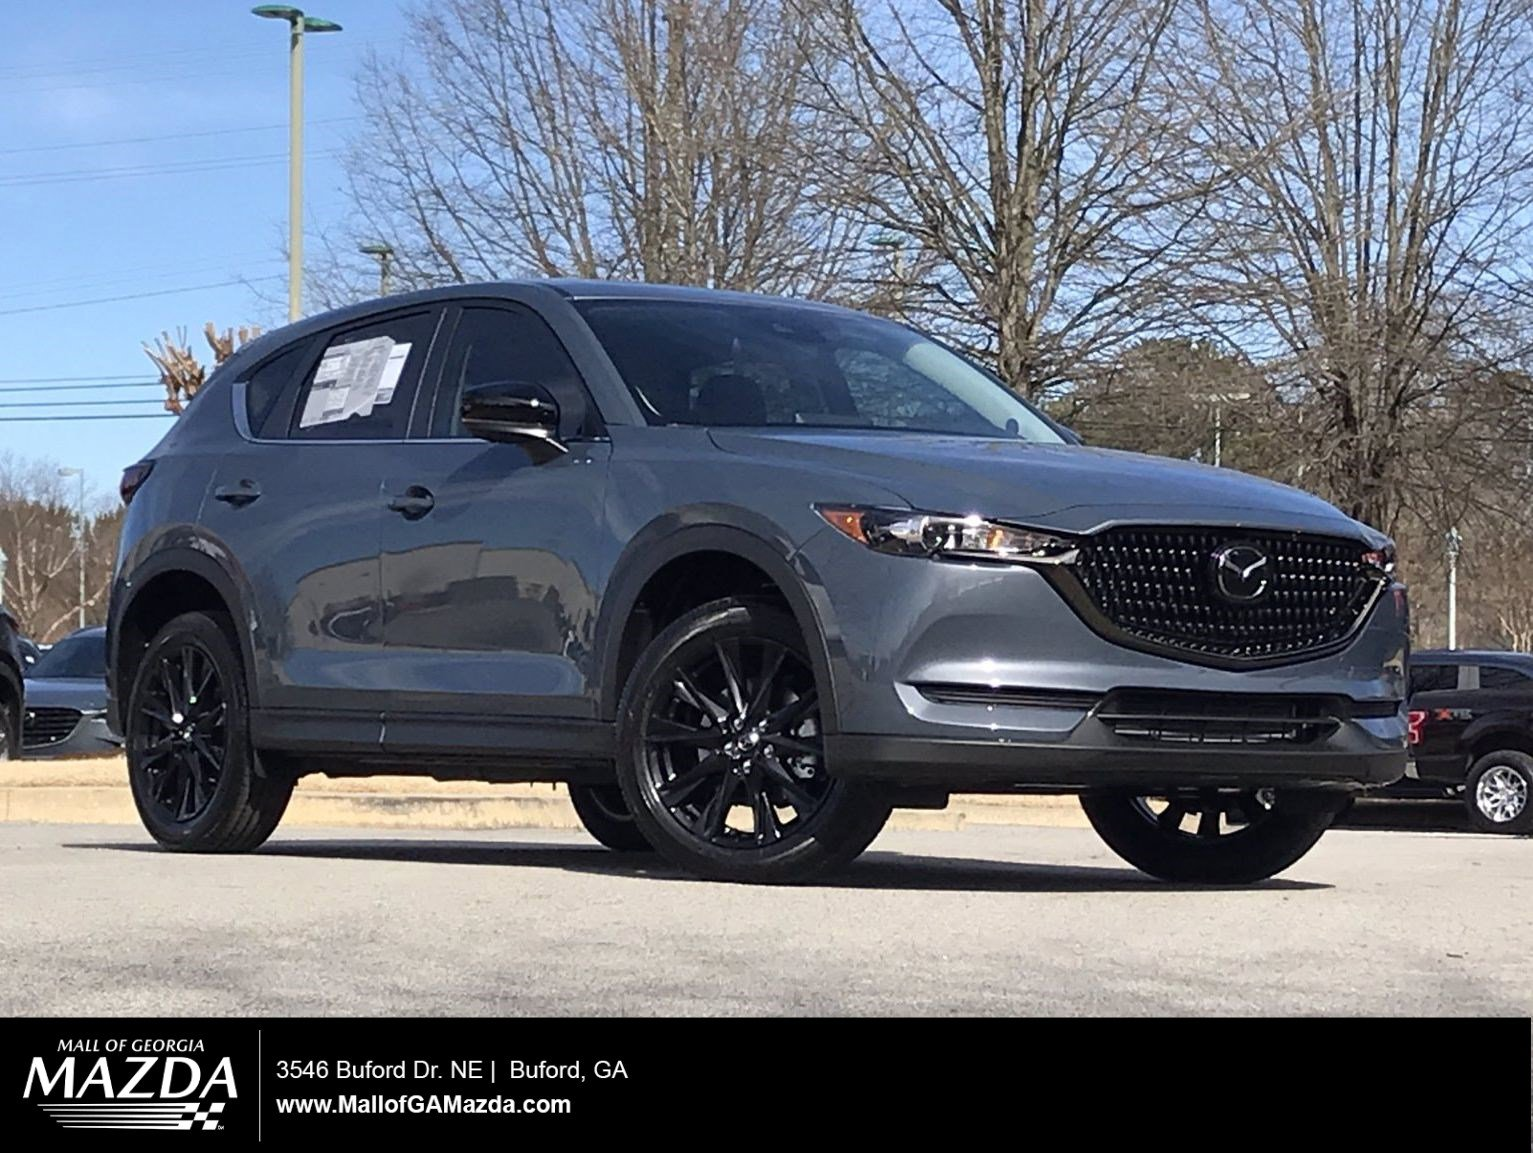 New 2021 MAZDA CX-5 Carbon Edition Turbo